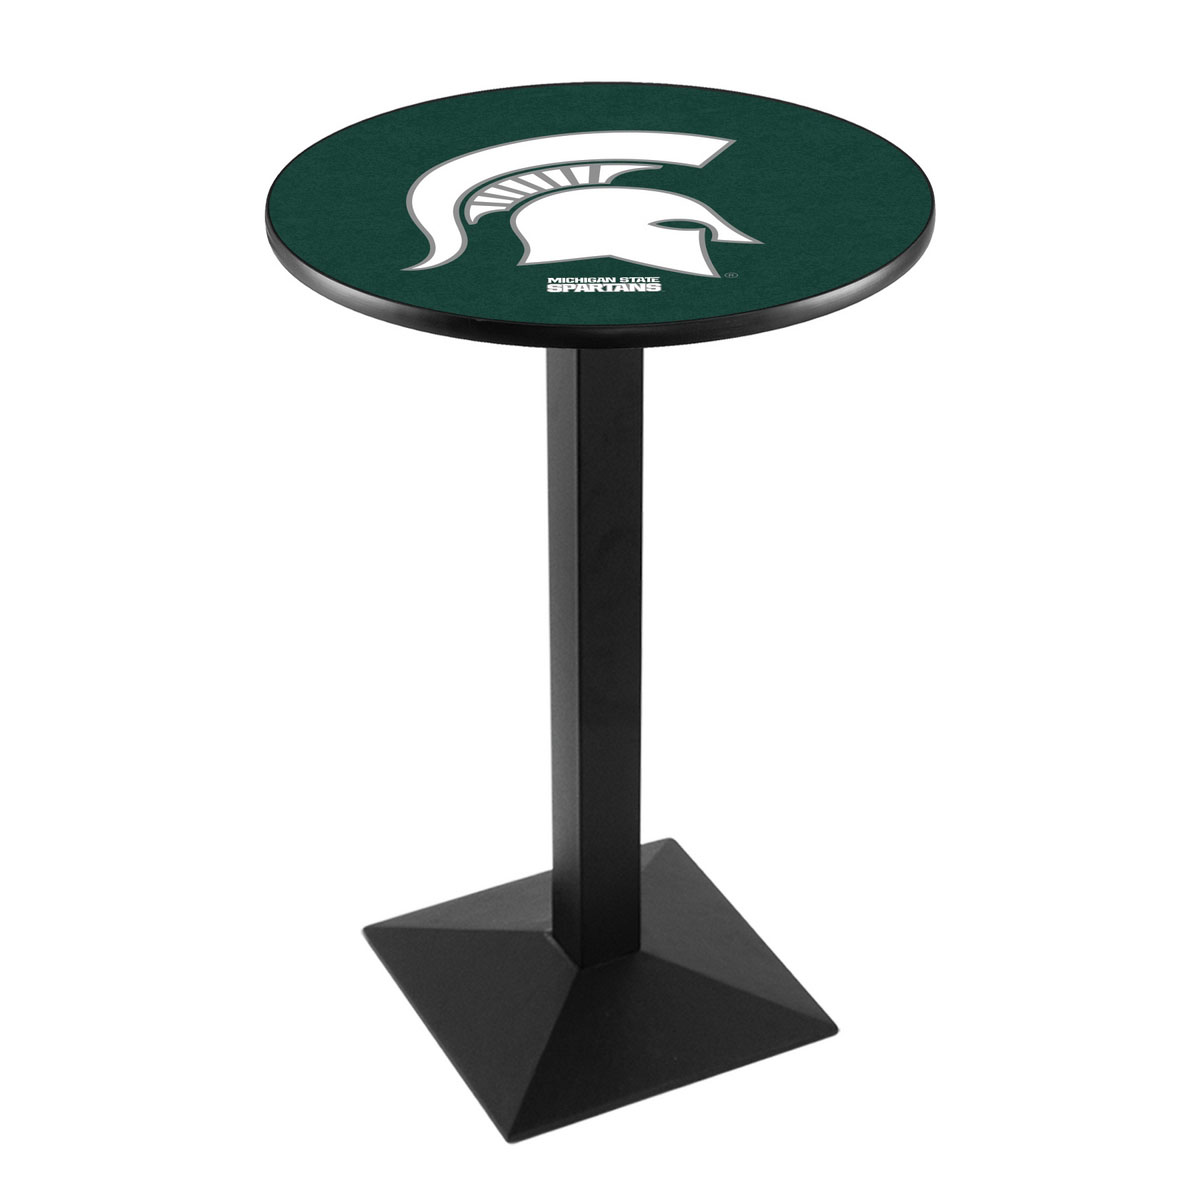 Select Michigan-State-University-Logo-Pub-Bar-Table-Square-Stand Product Picture 1705